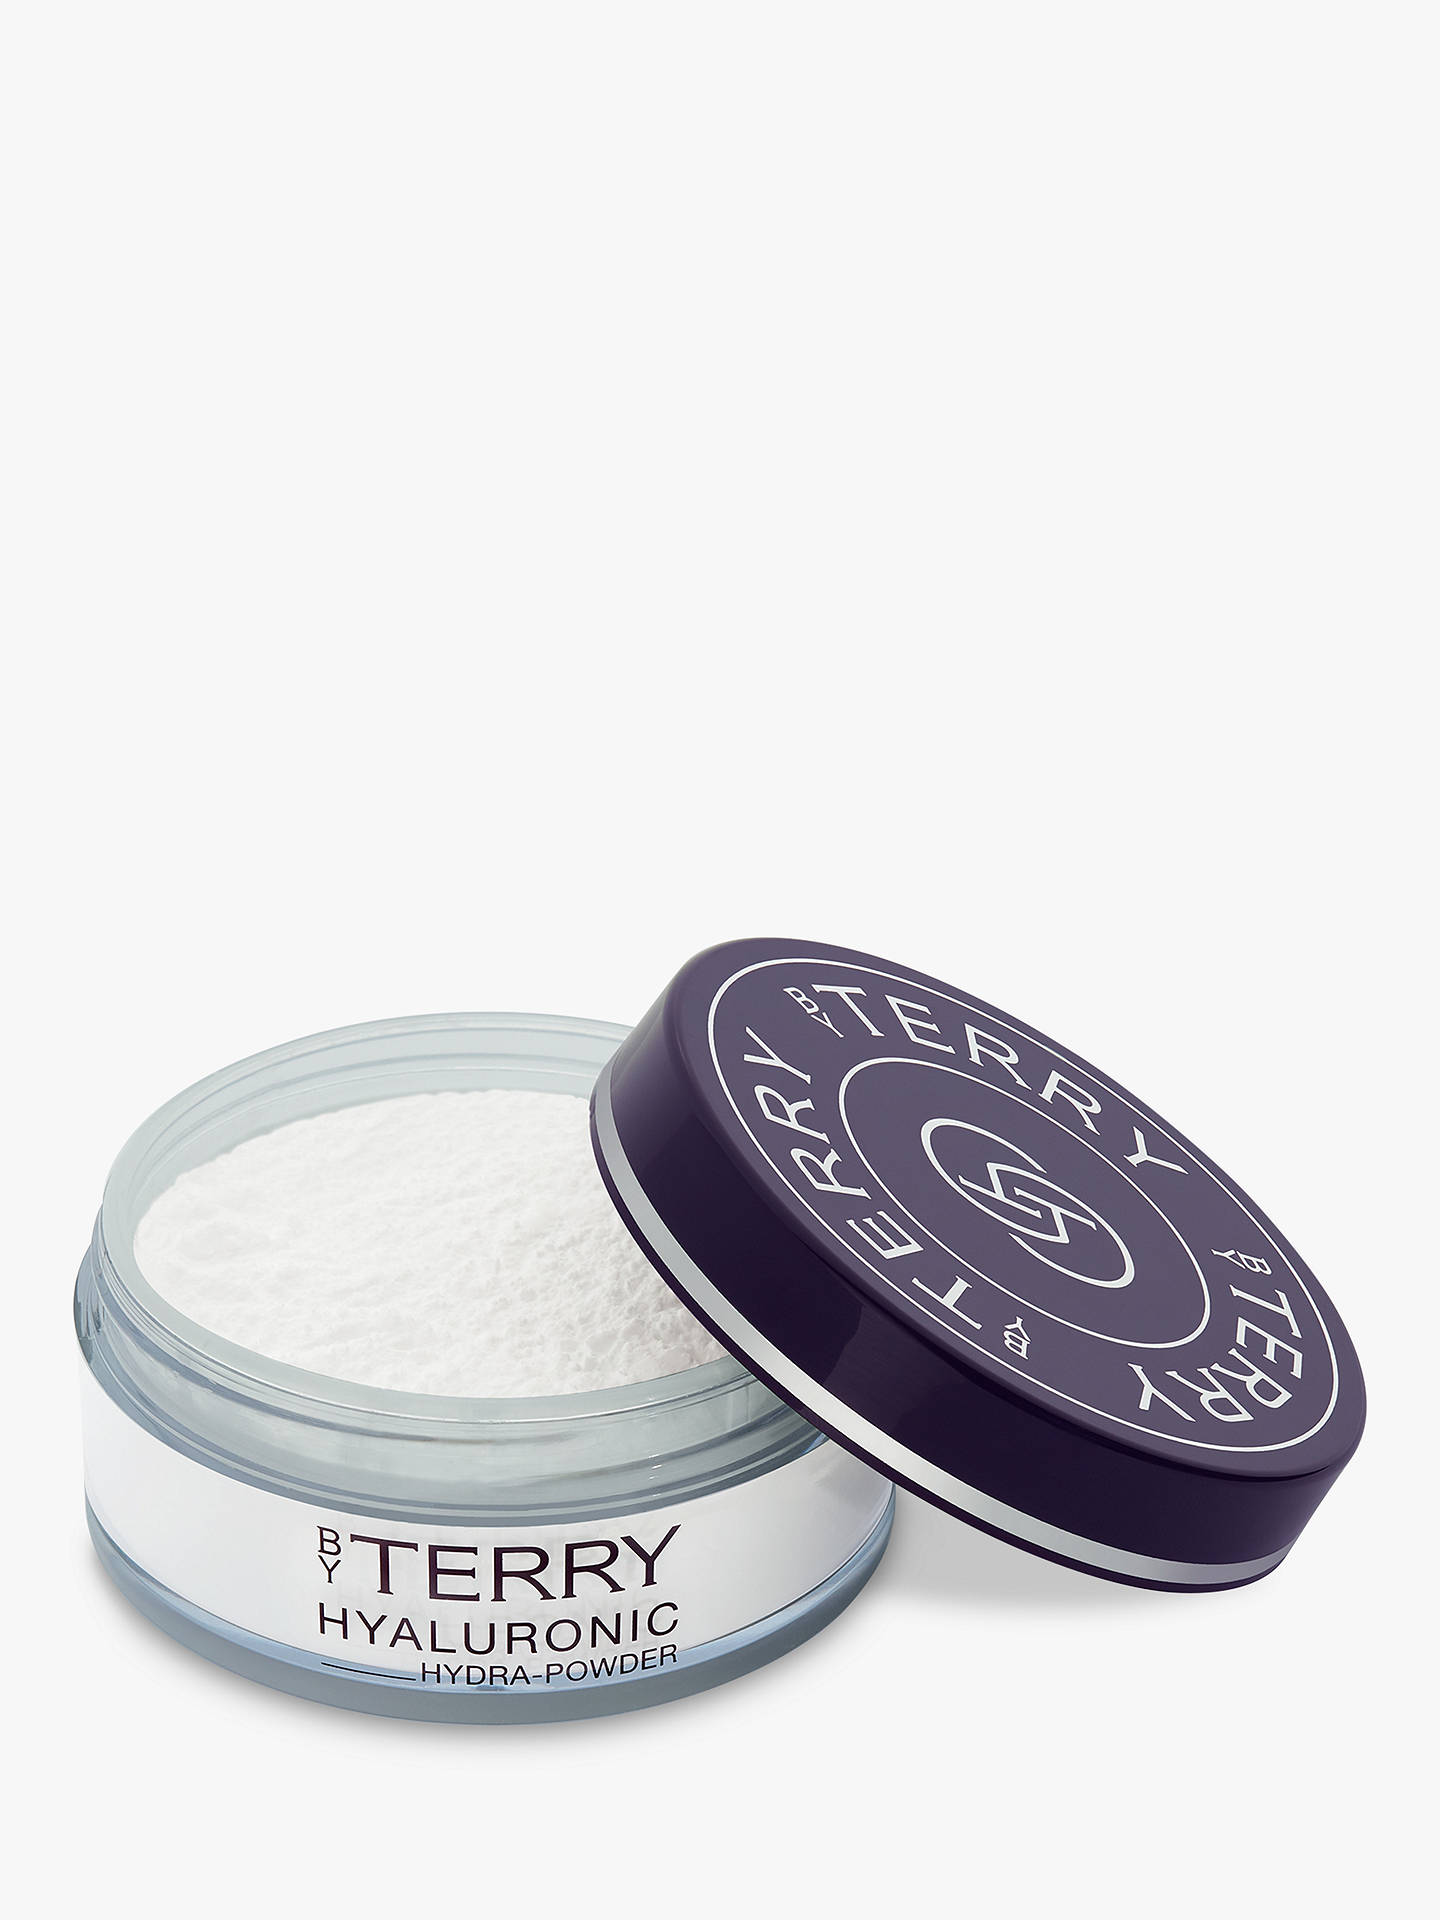 BuyBY TERRY Hyaluronic Hydra-Powder, 10g Online at johnlewis.com